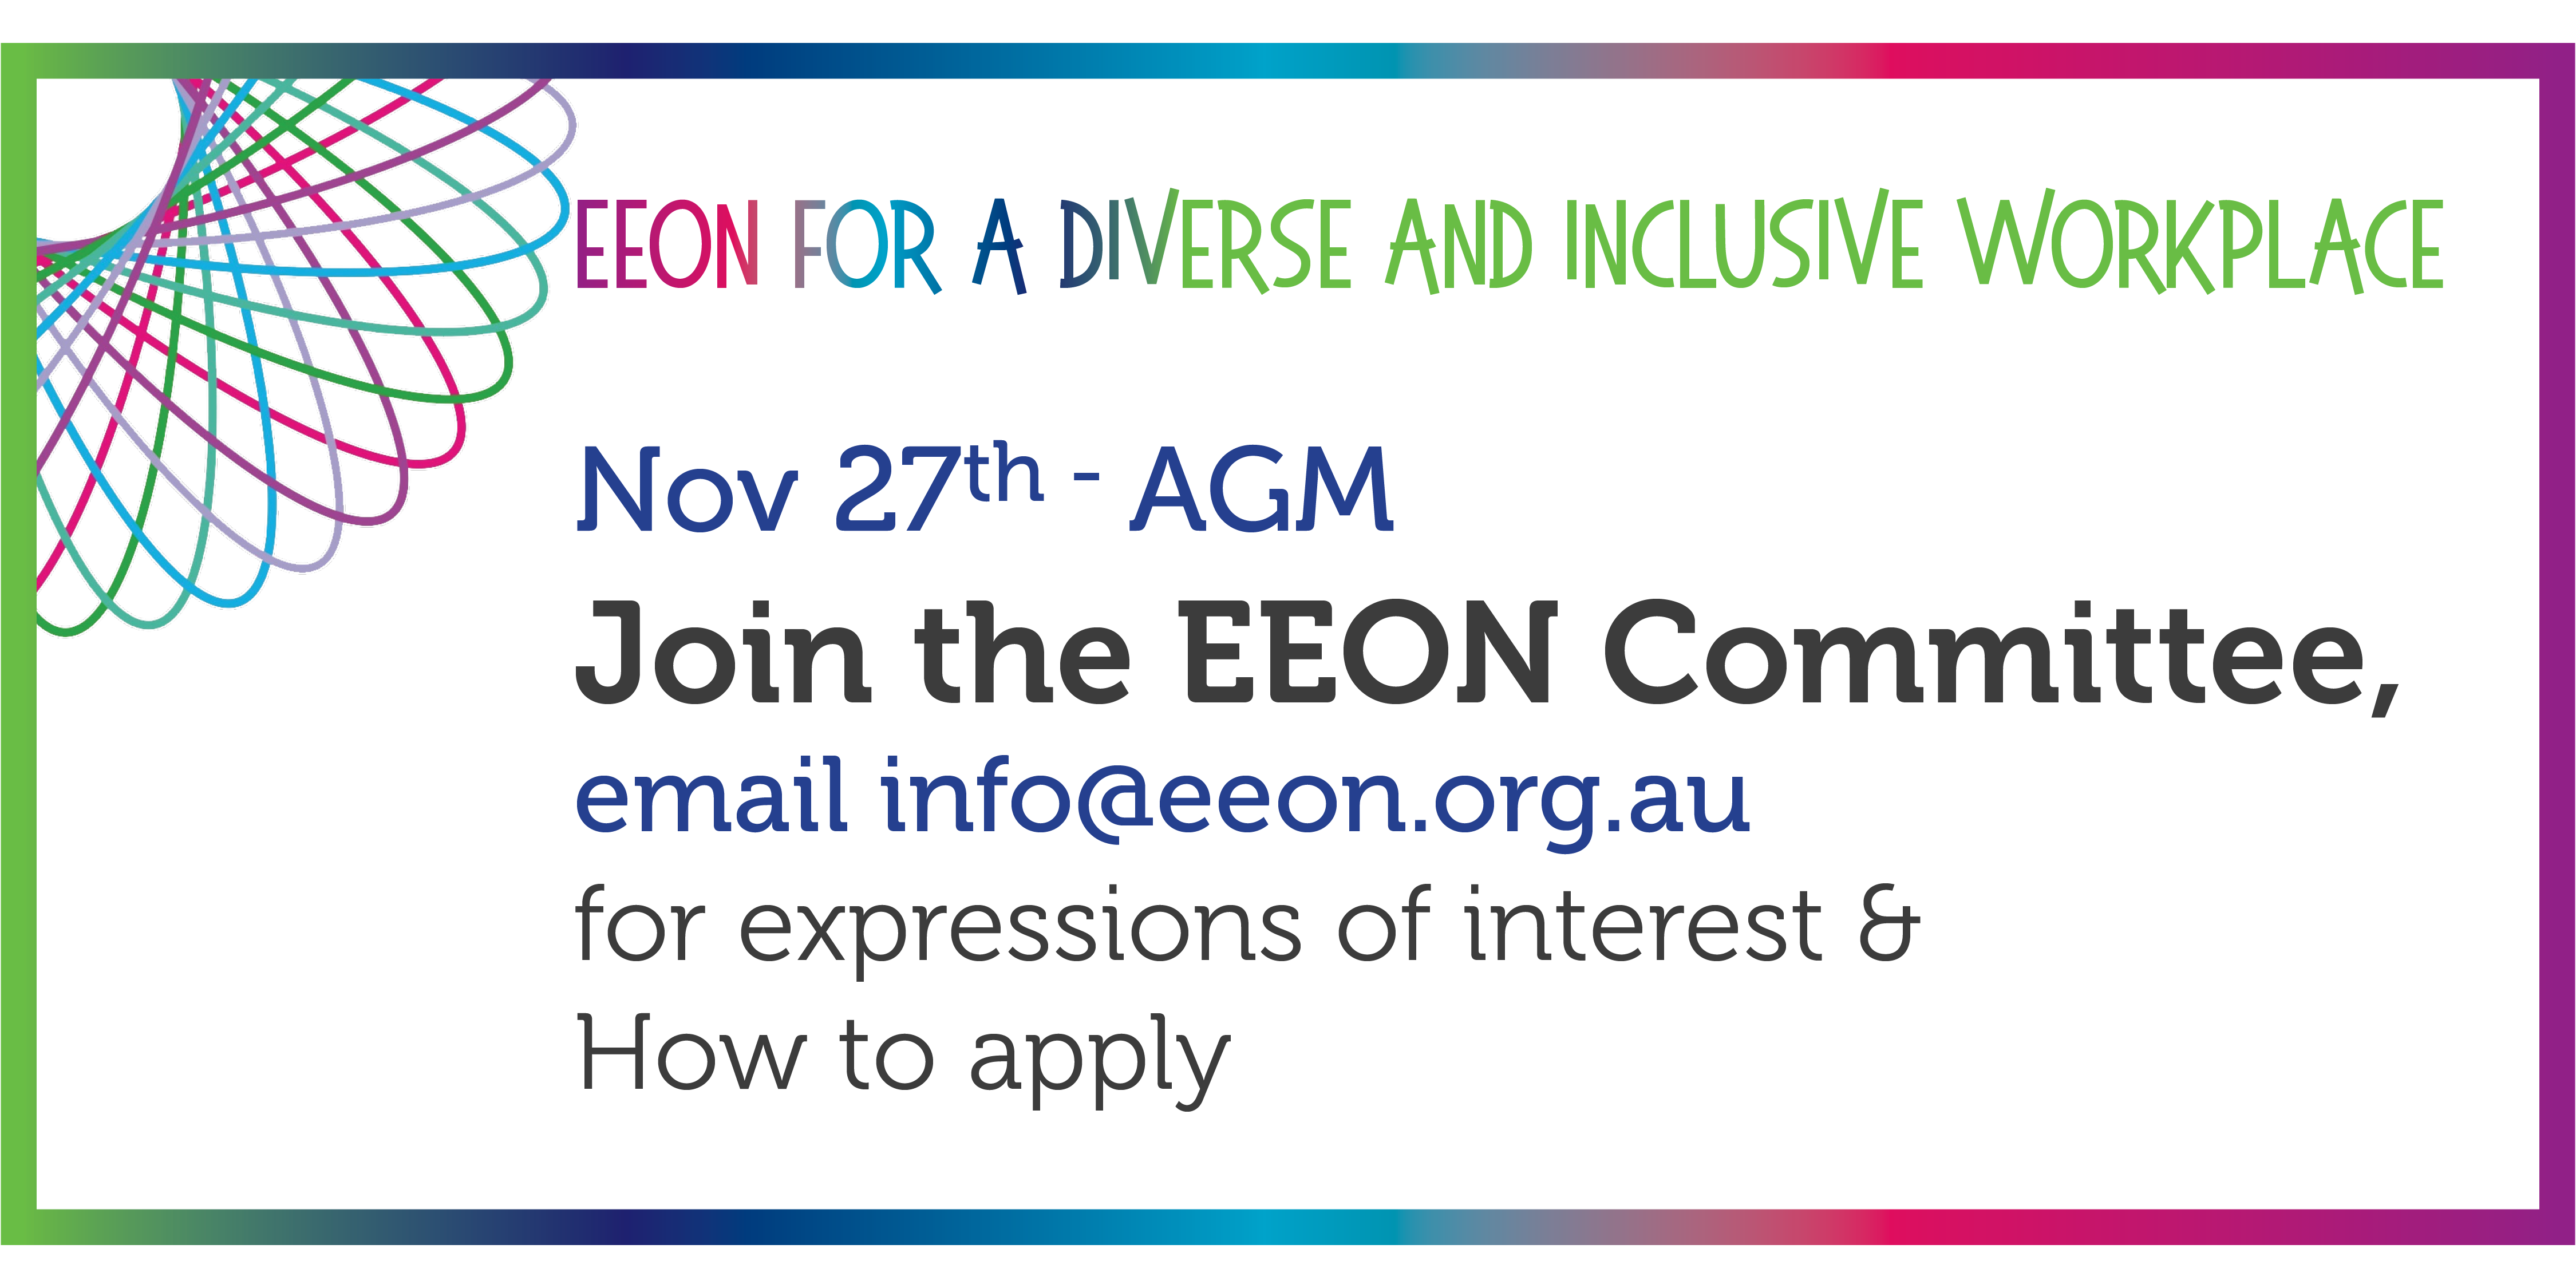 EEON committee expressions of interest fixed